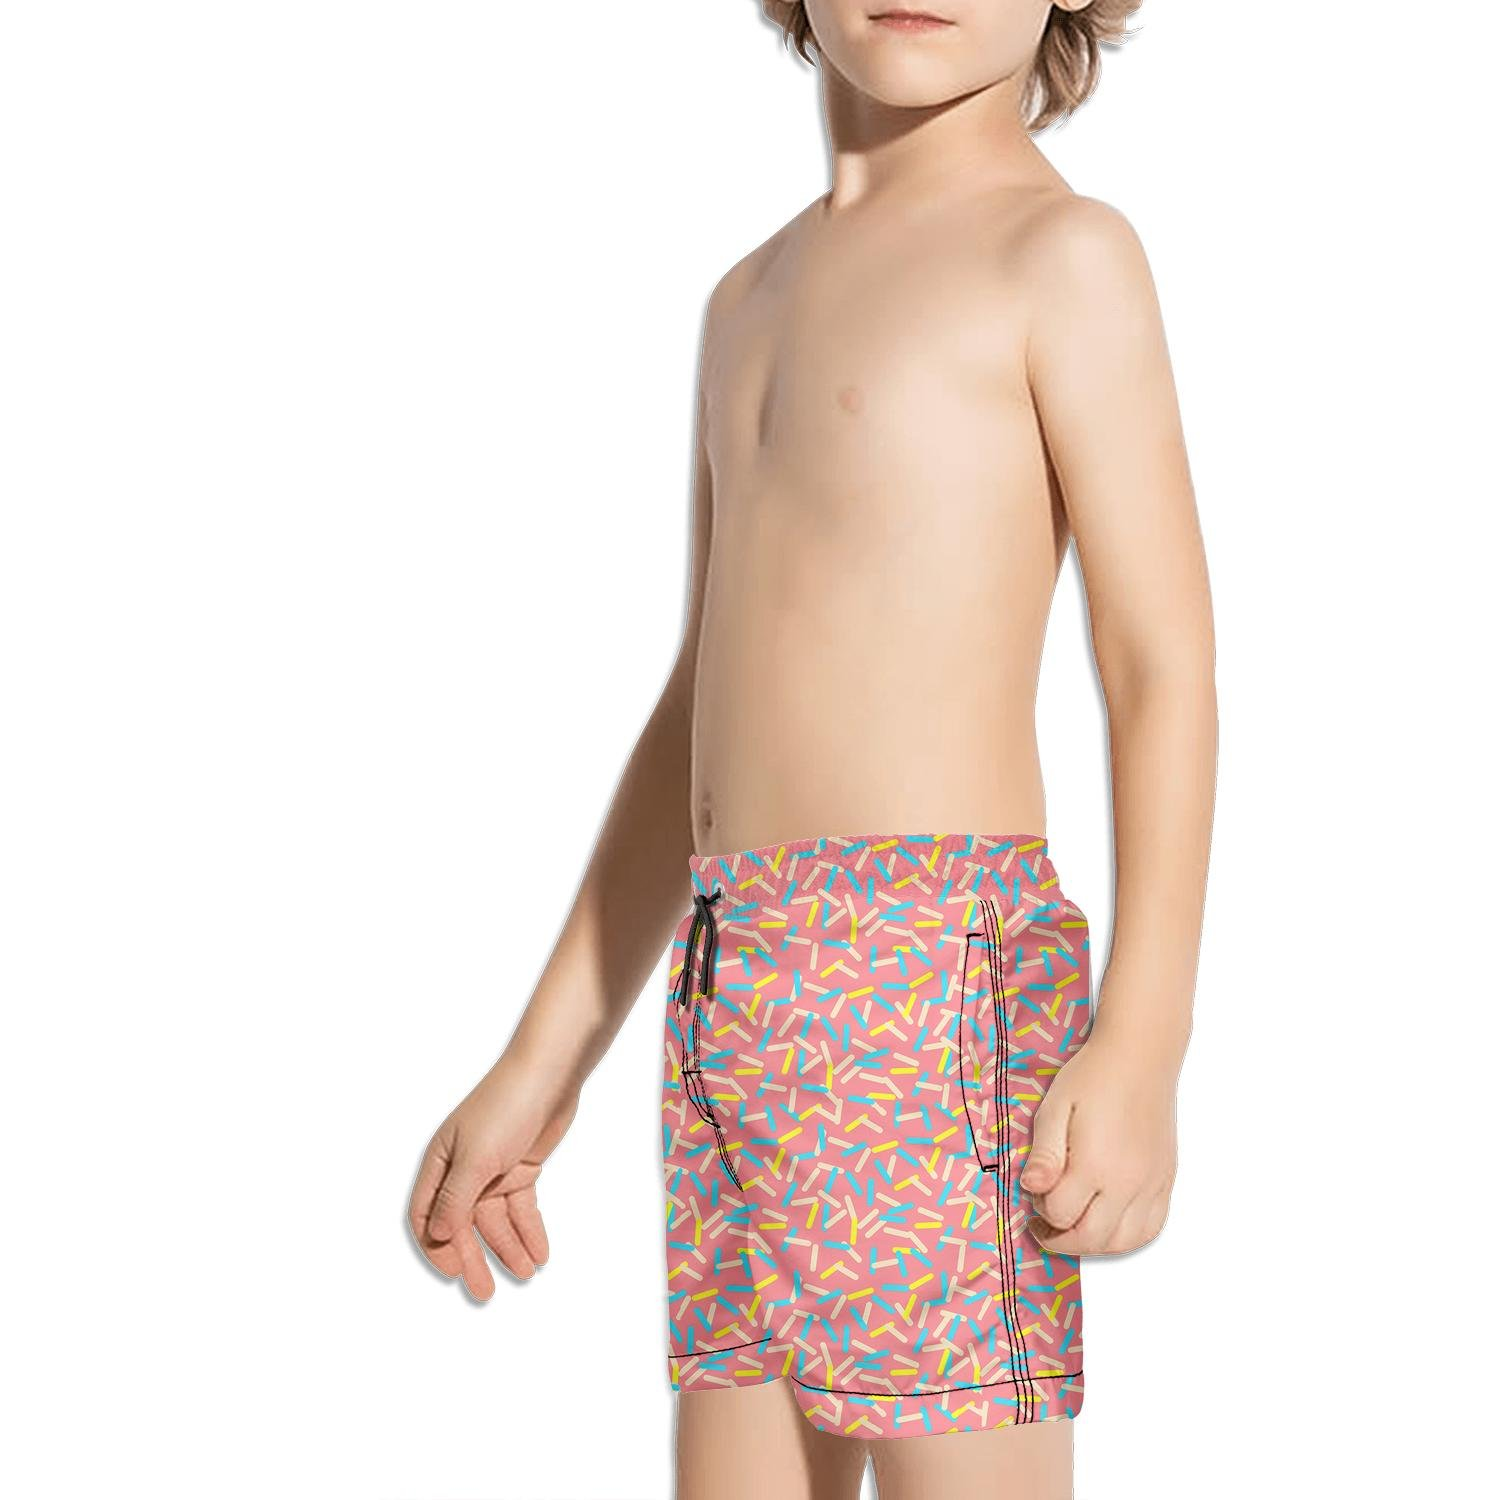 XULANG Kids Colorful Glazed Donut Swimming Trunks Surfing Skate Stretch Boardshorts